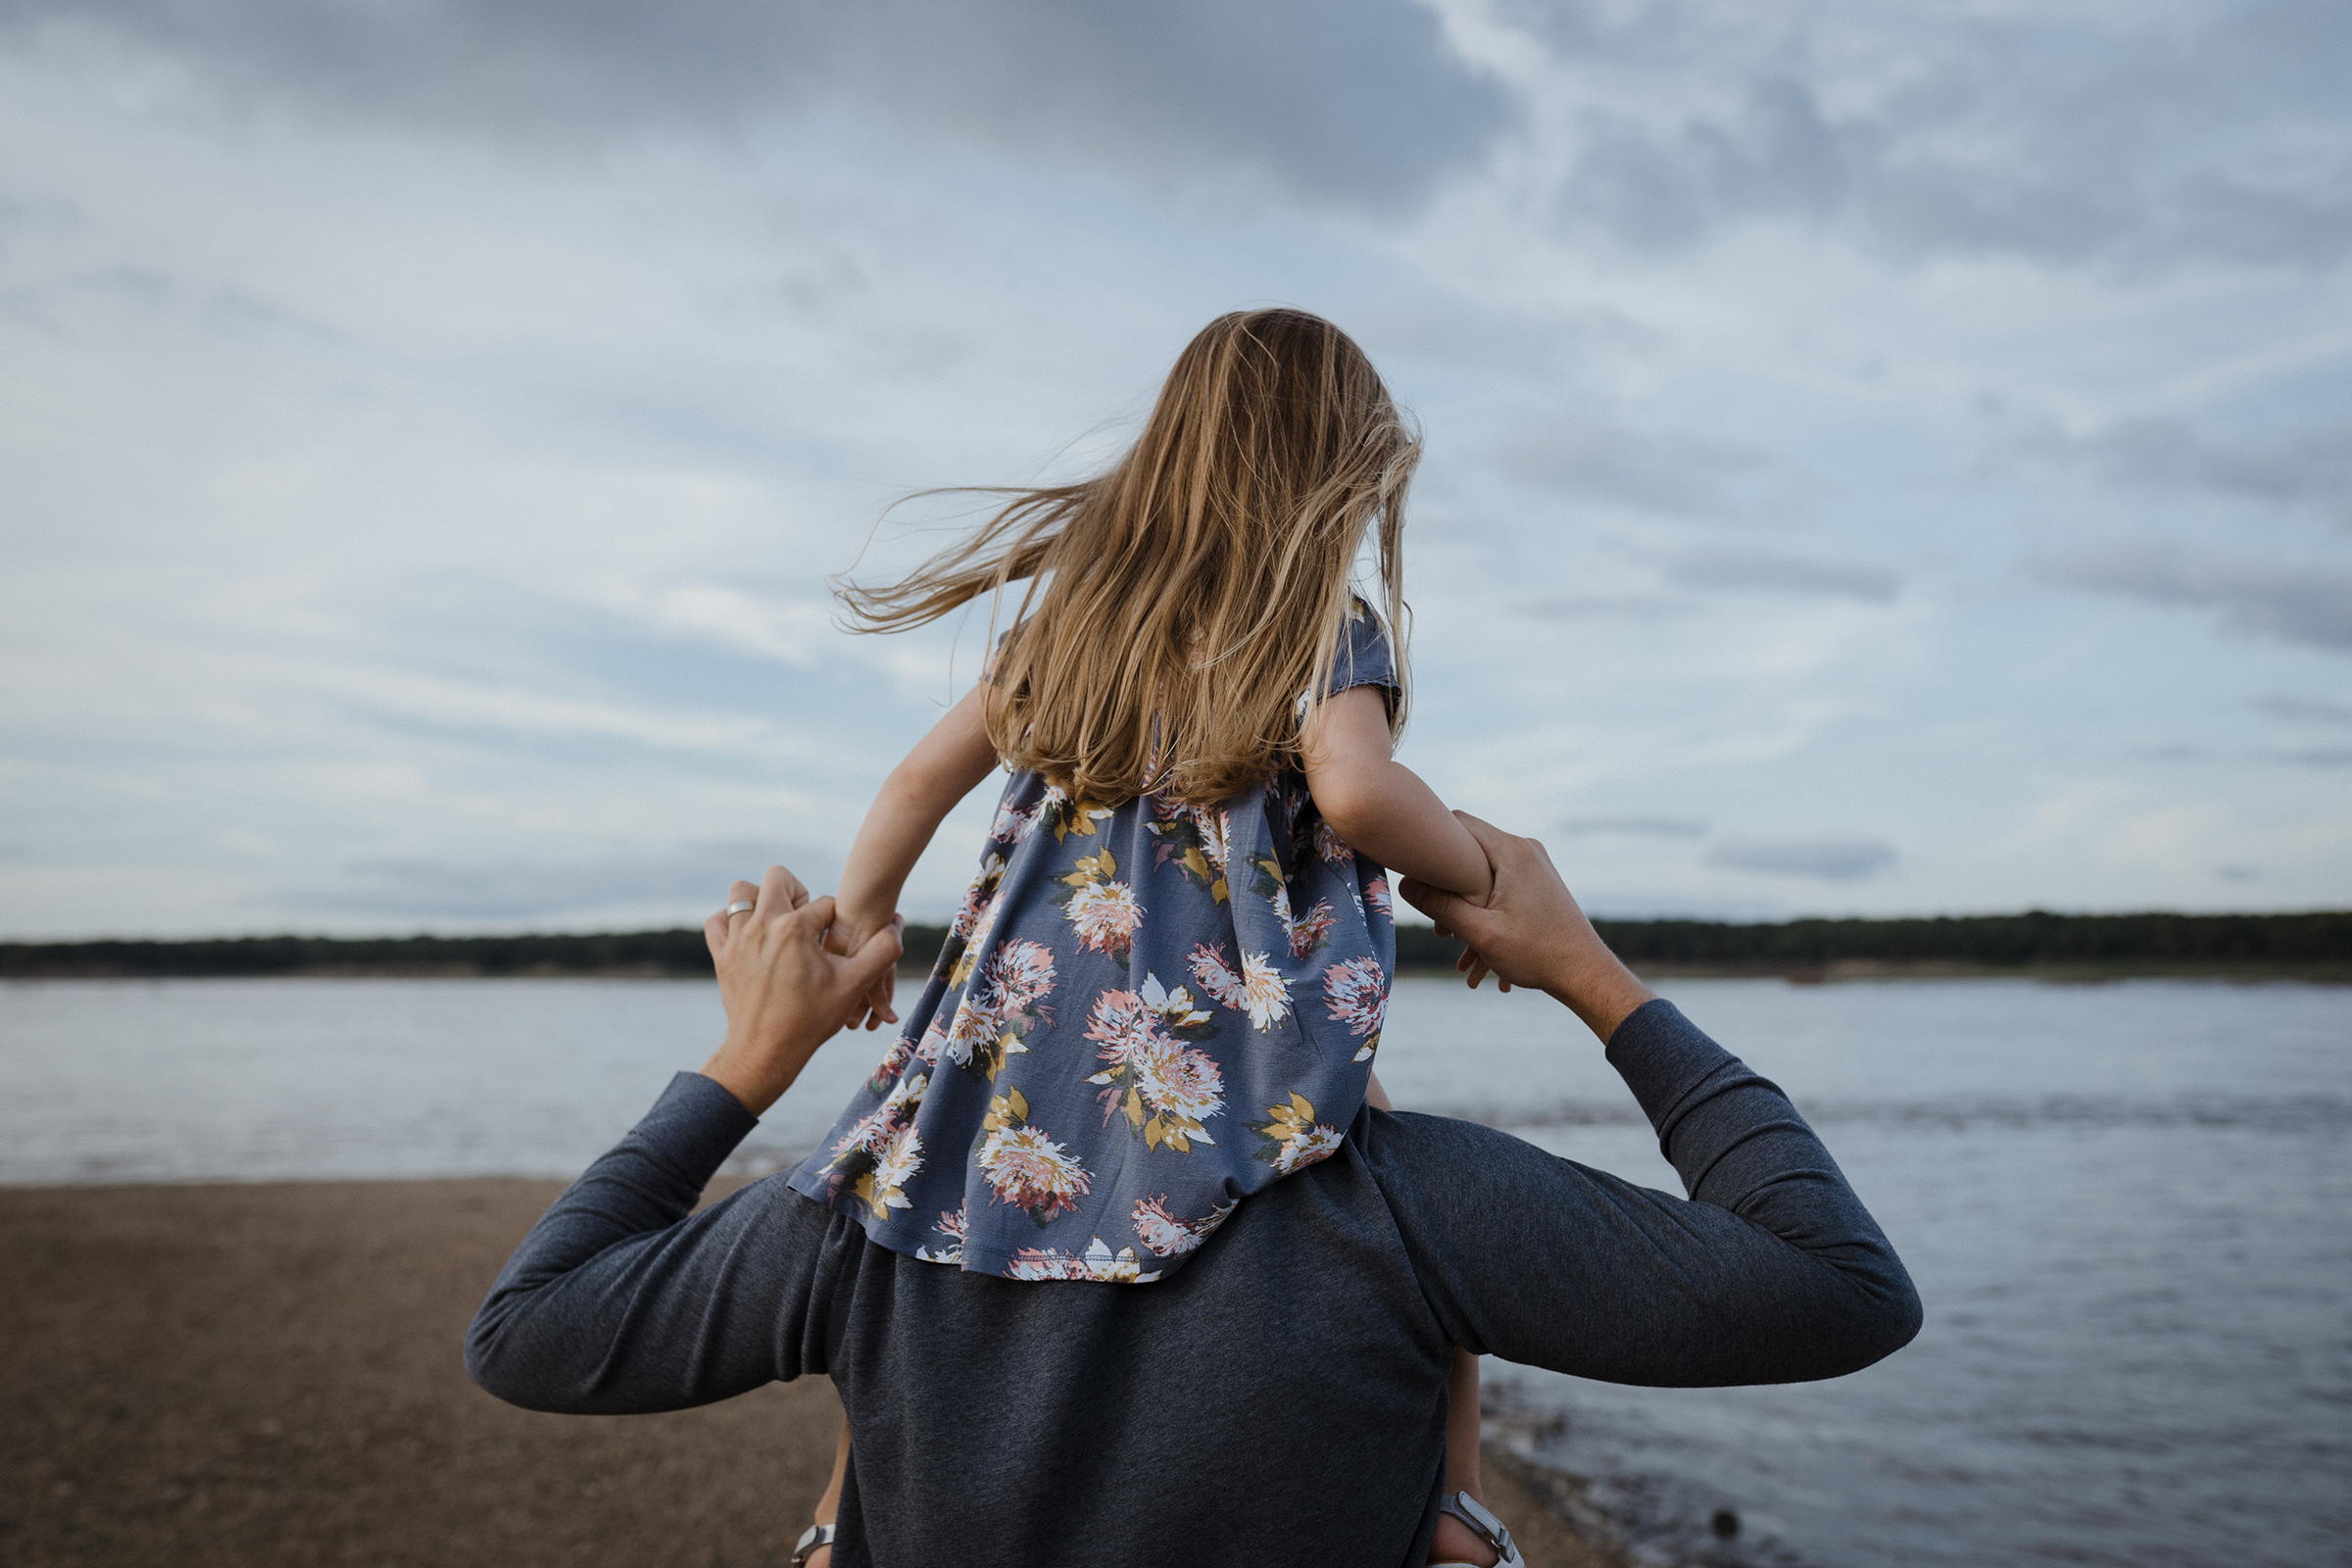 mueller-family-dad-carrying-daughter-on-shoulders-granger-iowa-raelyn-ramey-photography.jpg